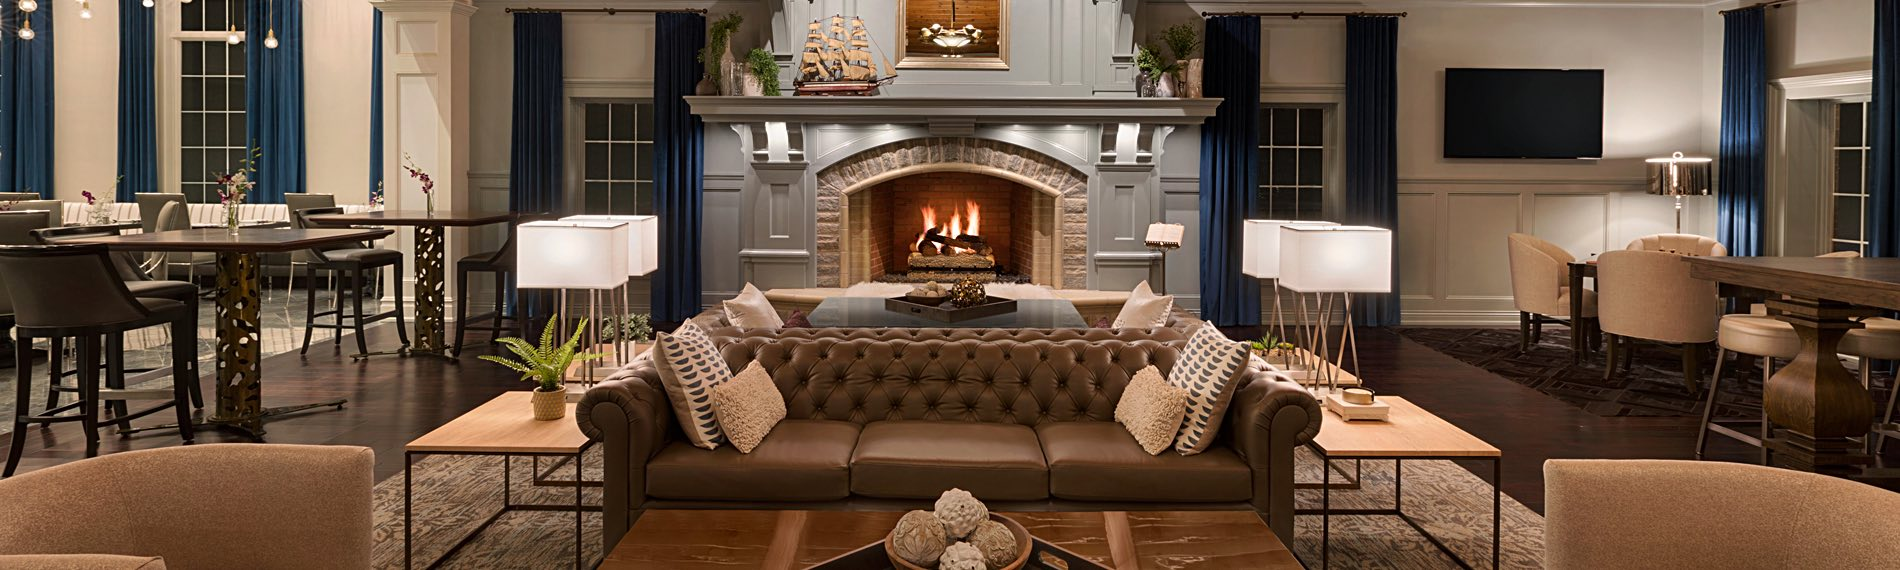 Comfortable lounge area with a brown leather couch, fireplace and hightop table and chairs